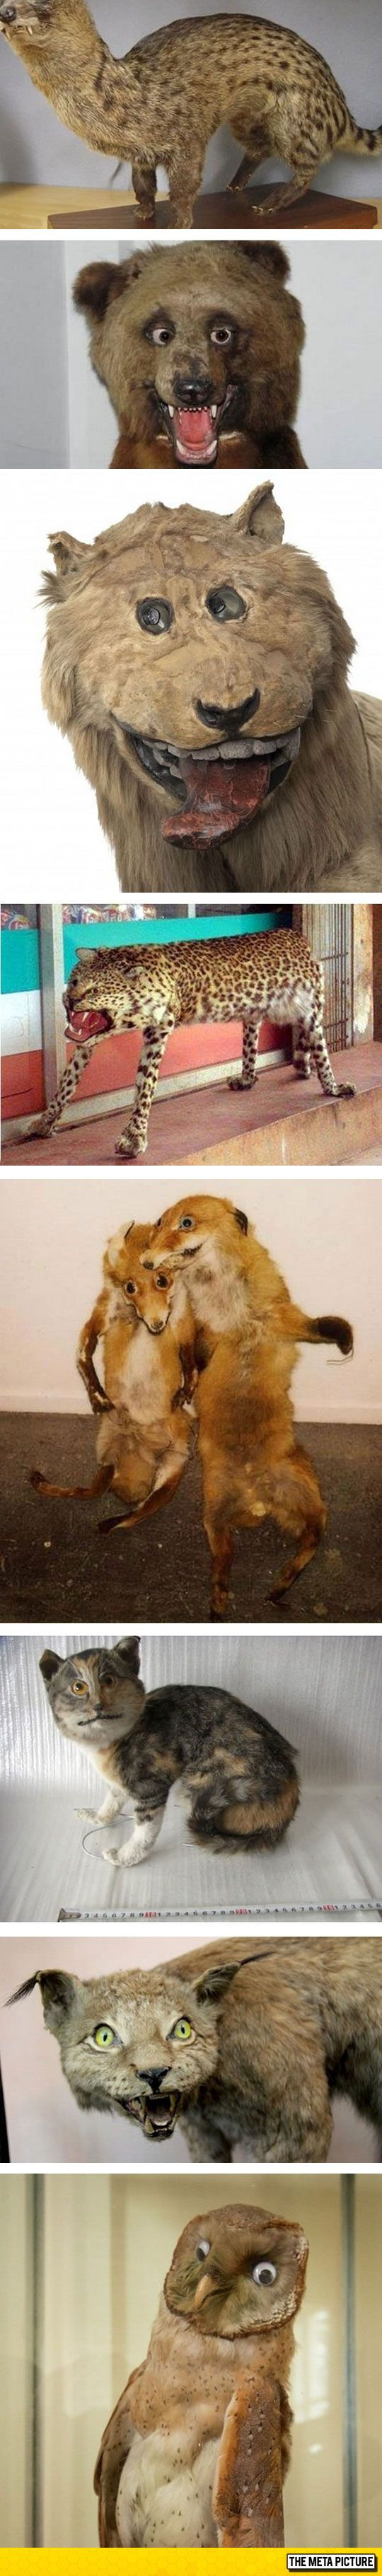 Taxidermy Gone Awfully Wrong